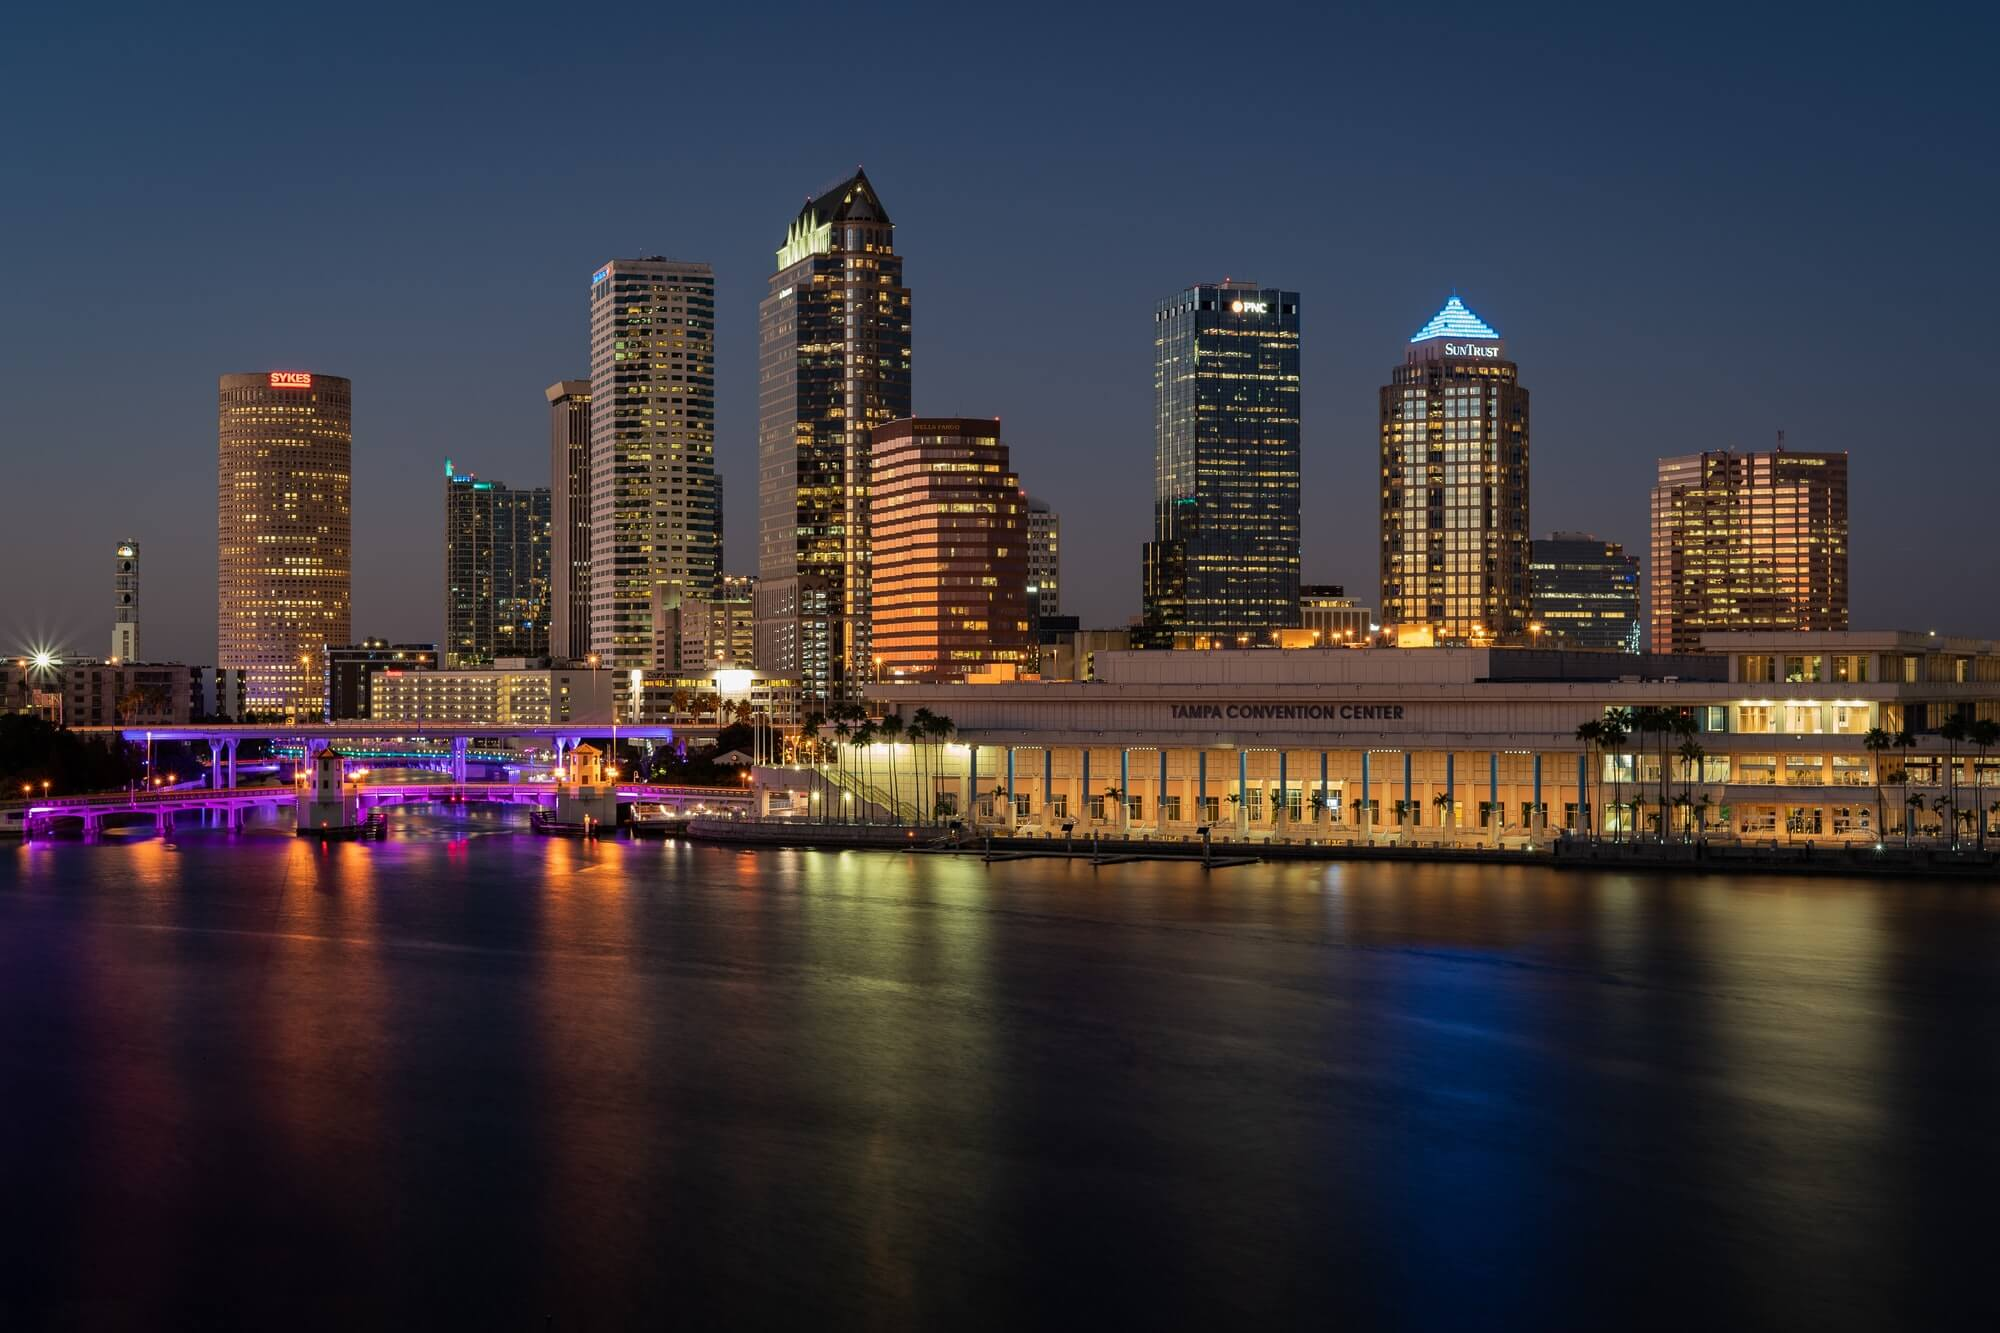 This image was taken from on top of the Tampa General Hospital parking garage on November 16, 2018. It can be purchased as an NFT here: https://opensea.io/assets/0x495f947276749ce646f68ac8c248420045cb7b5e/43269033410772476733999453491381450536602253292415729108377370077841355440129